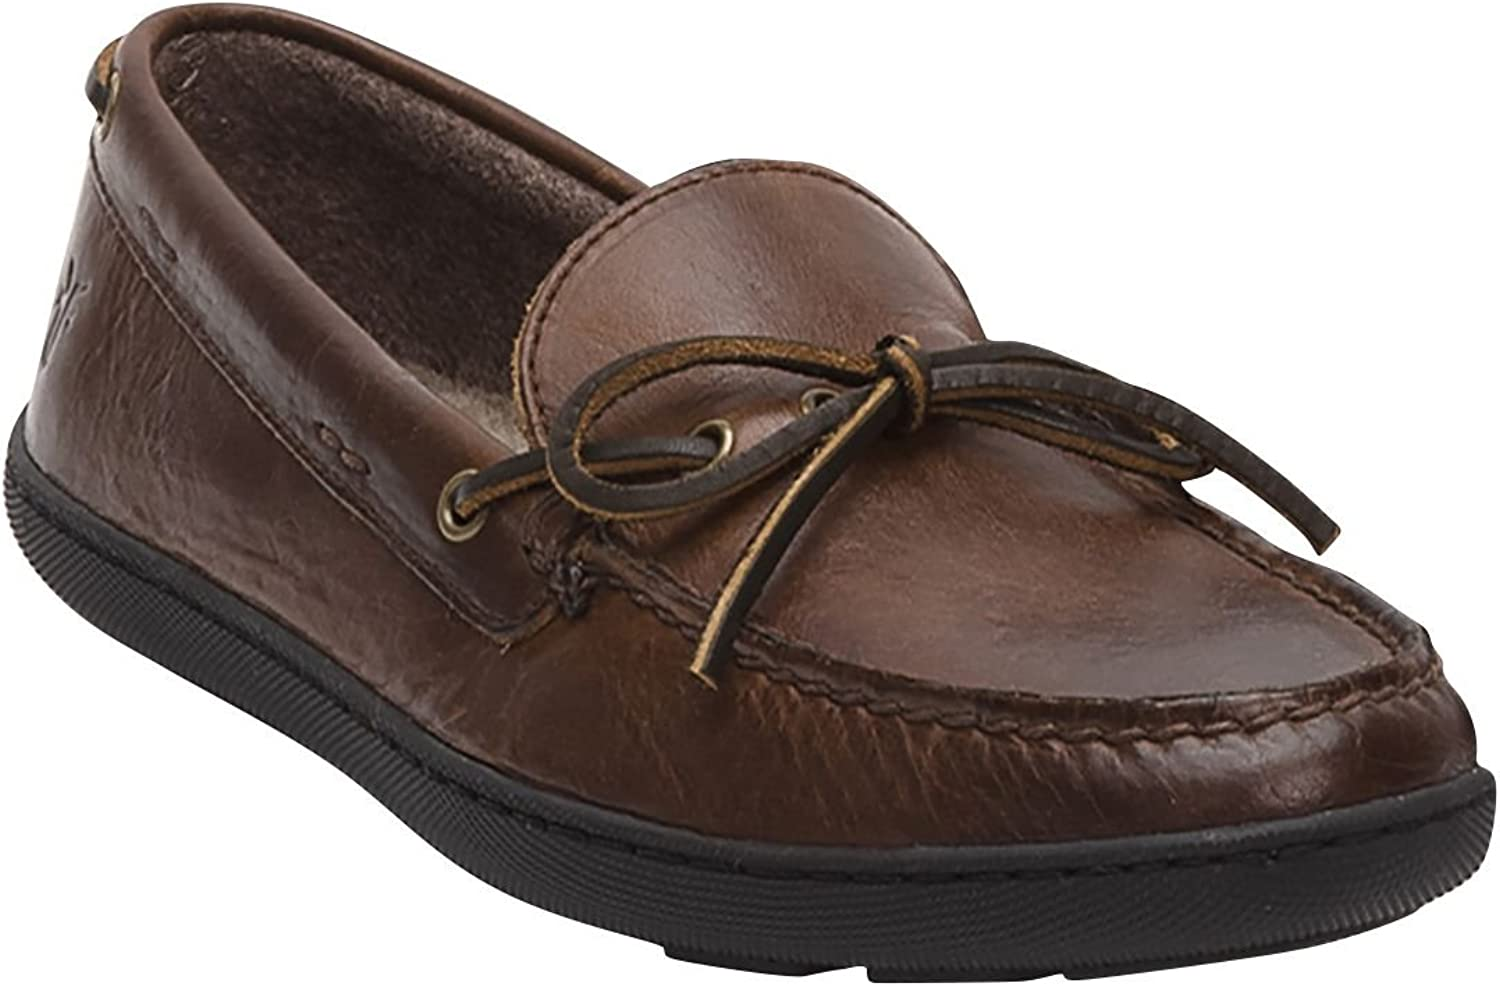 FRYE Men's Hugh Tie Moccasin Loafer